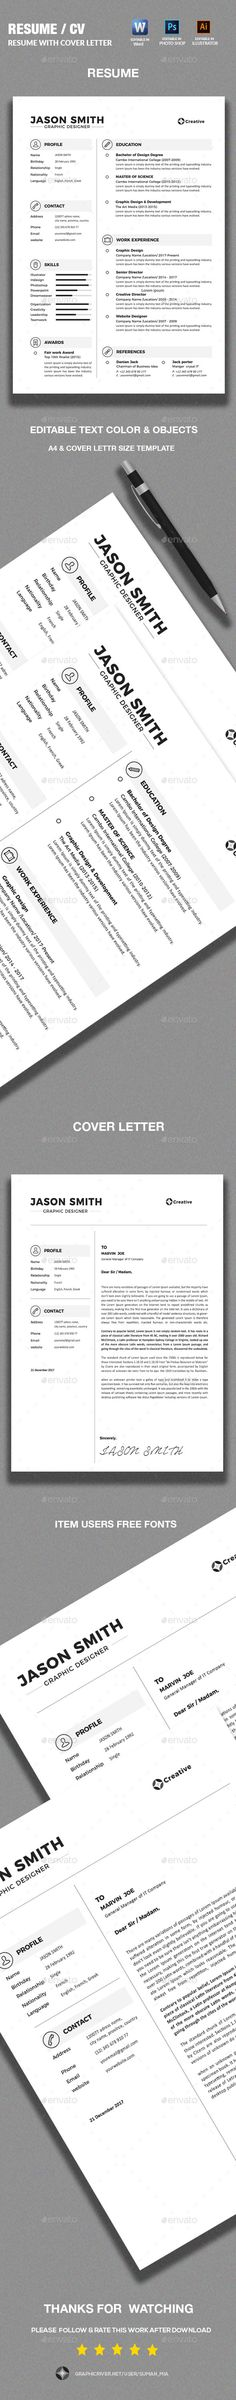 Resume Resume cv, Cv template and Graphic portfolio - ba resume